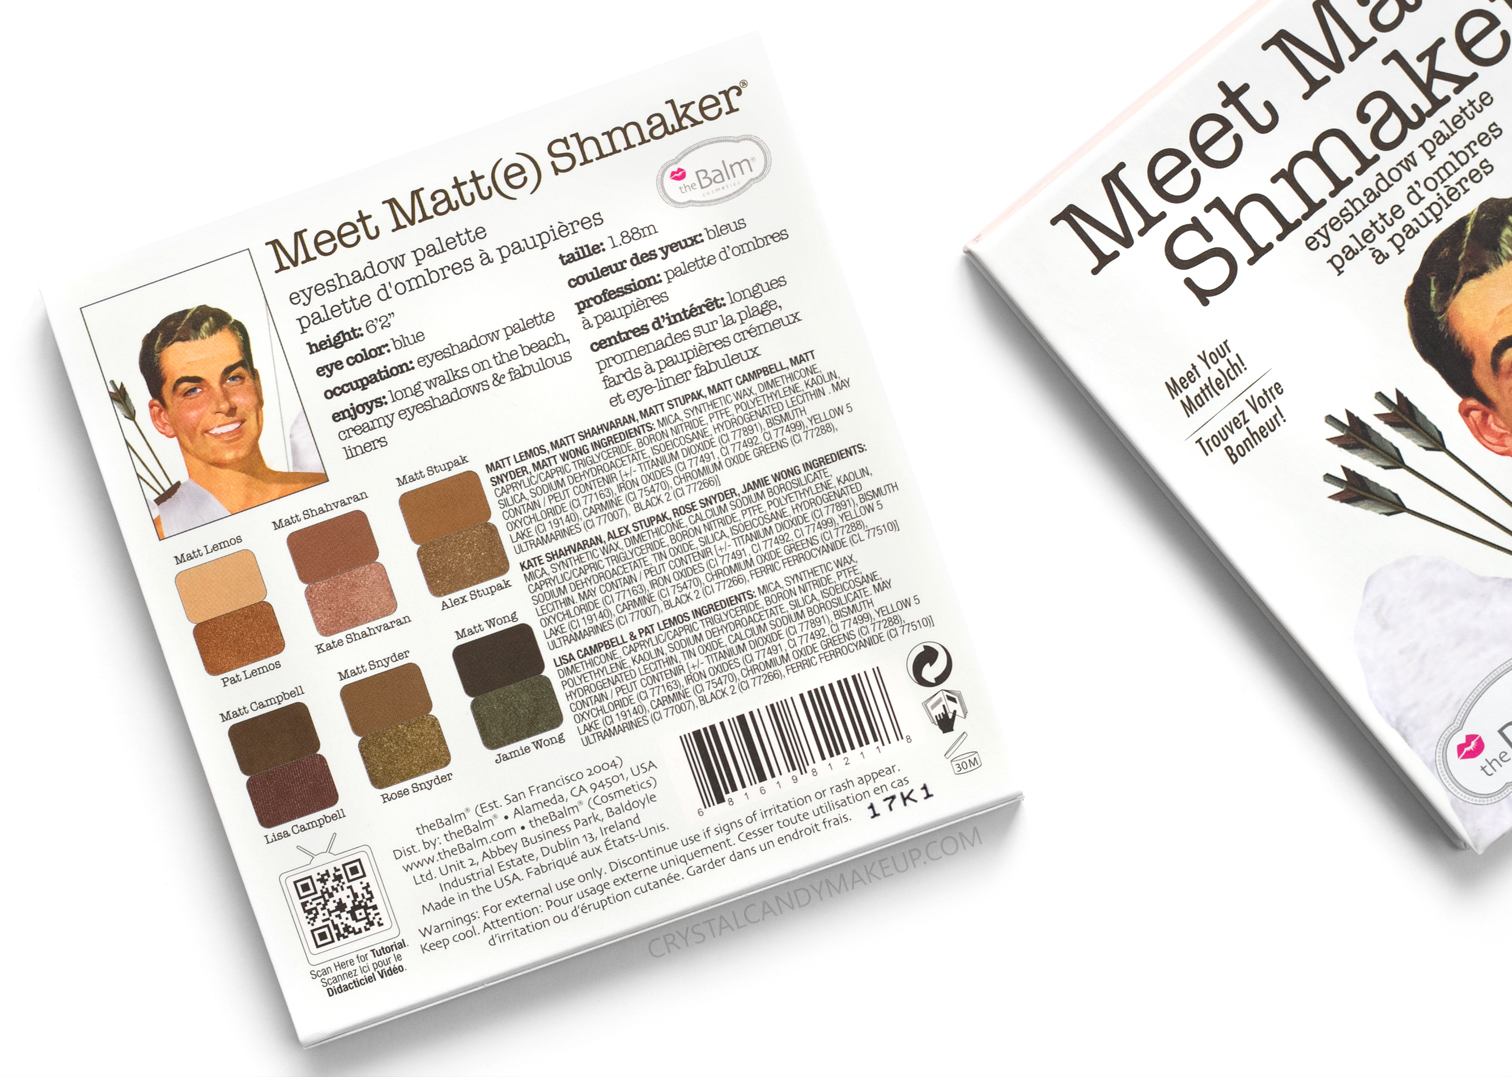 The Balm Meet Matt(e) Shmaker Eyeshadow Palette Review